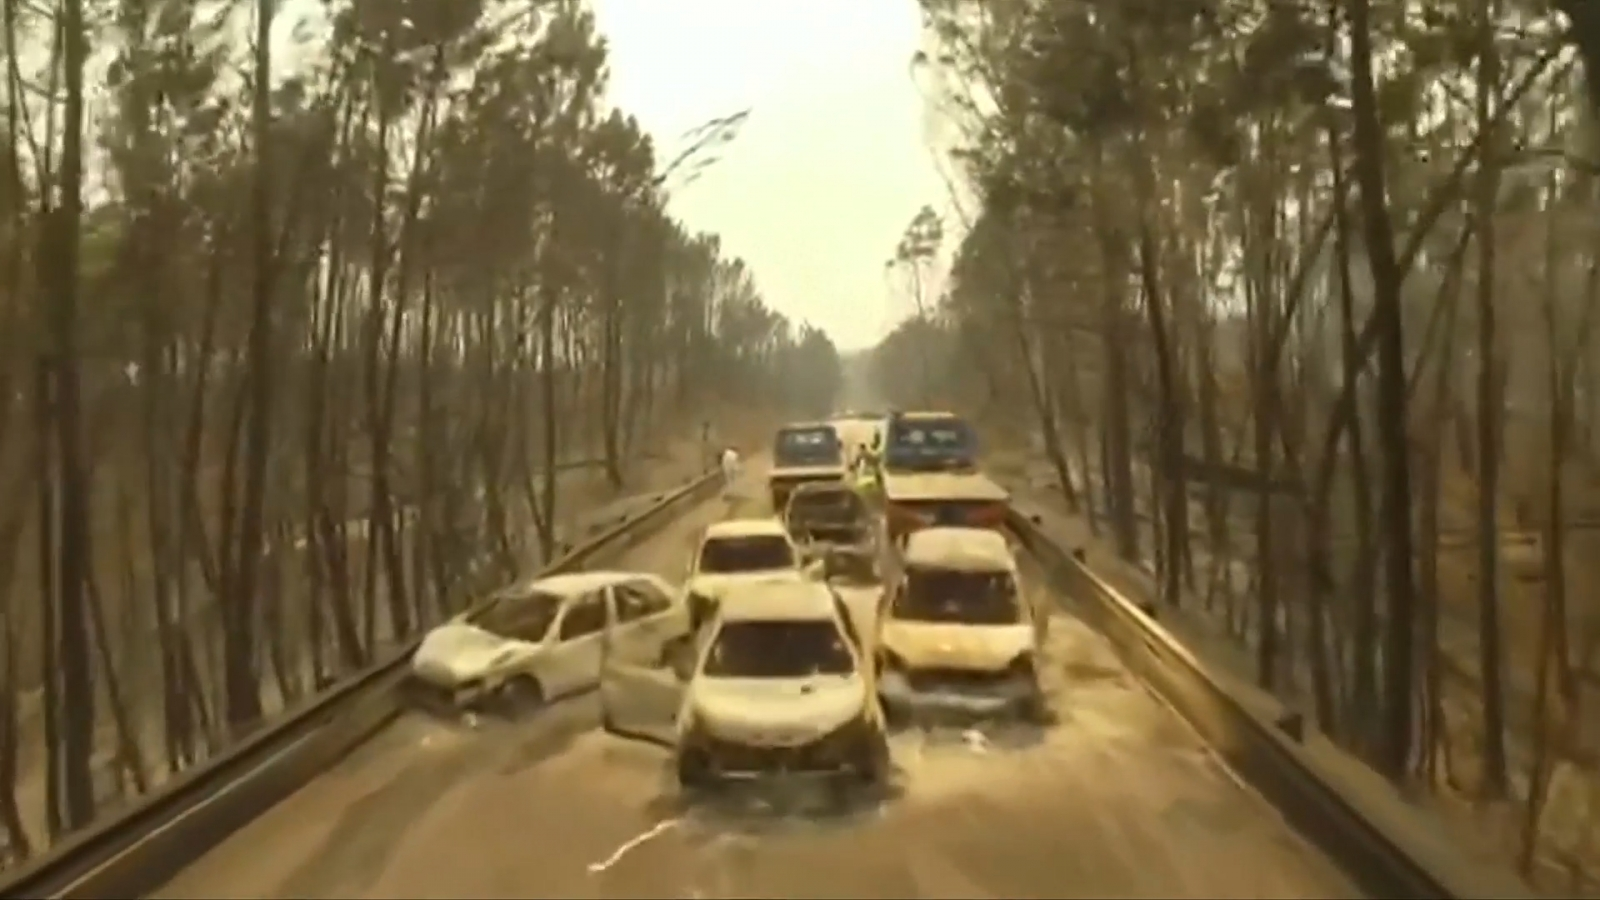 drone-footage-shows-aftermath-of-portugals-deadliest-forest-fire